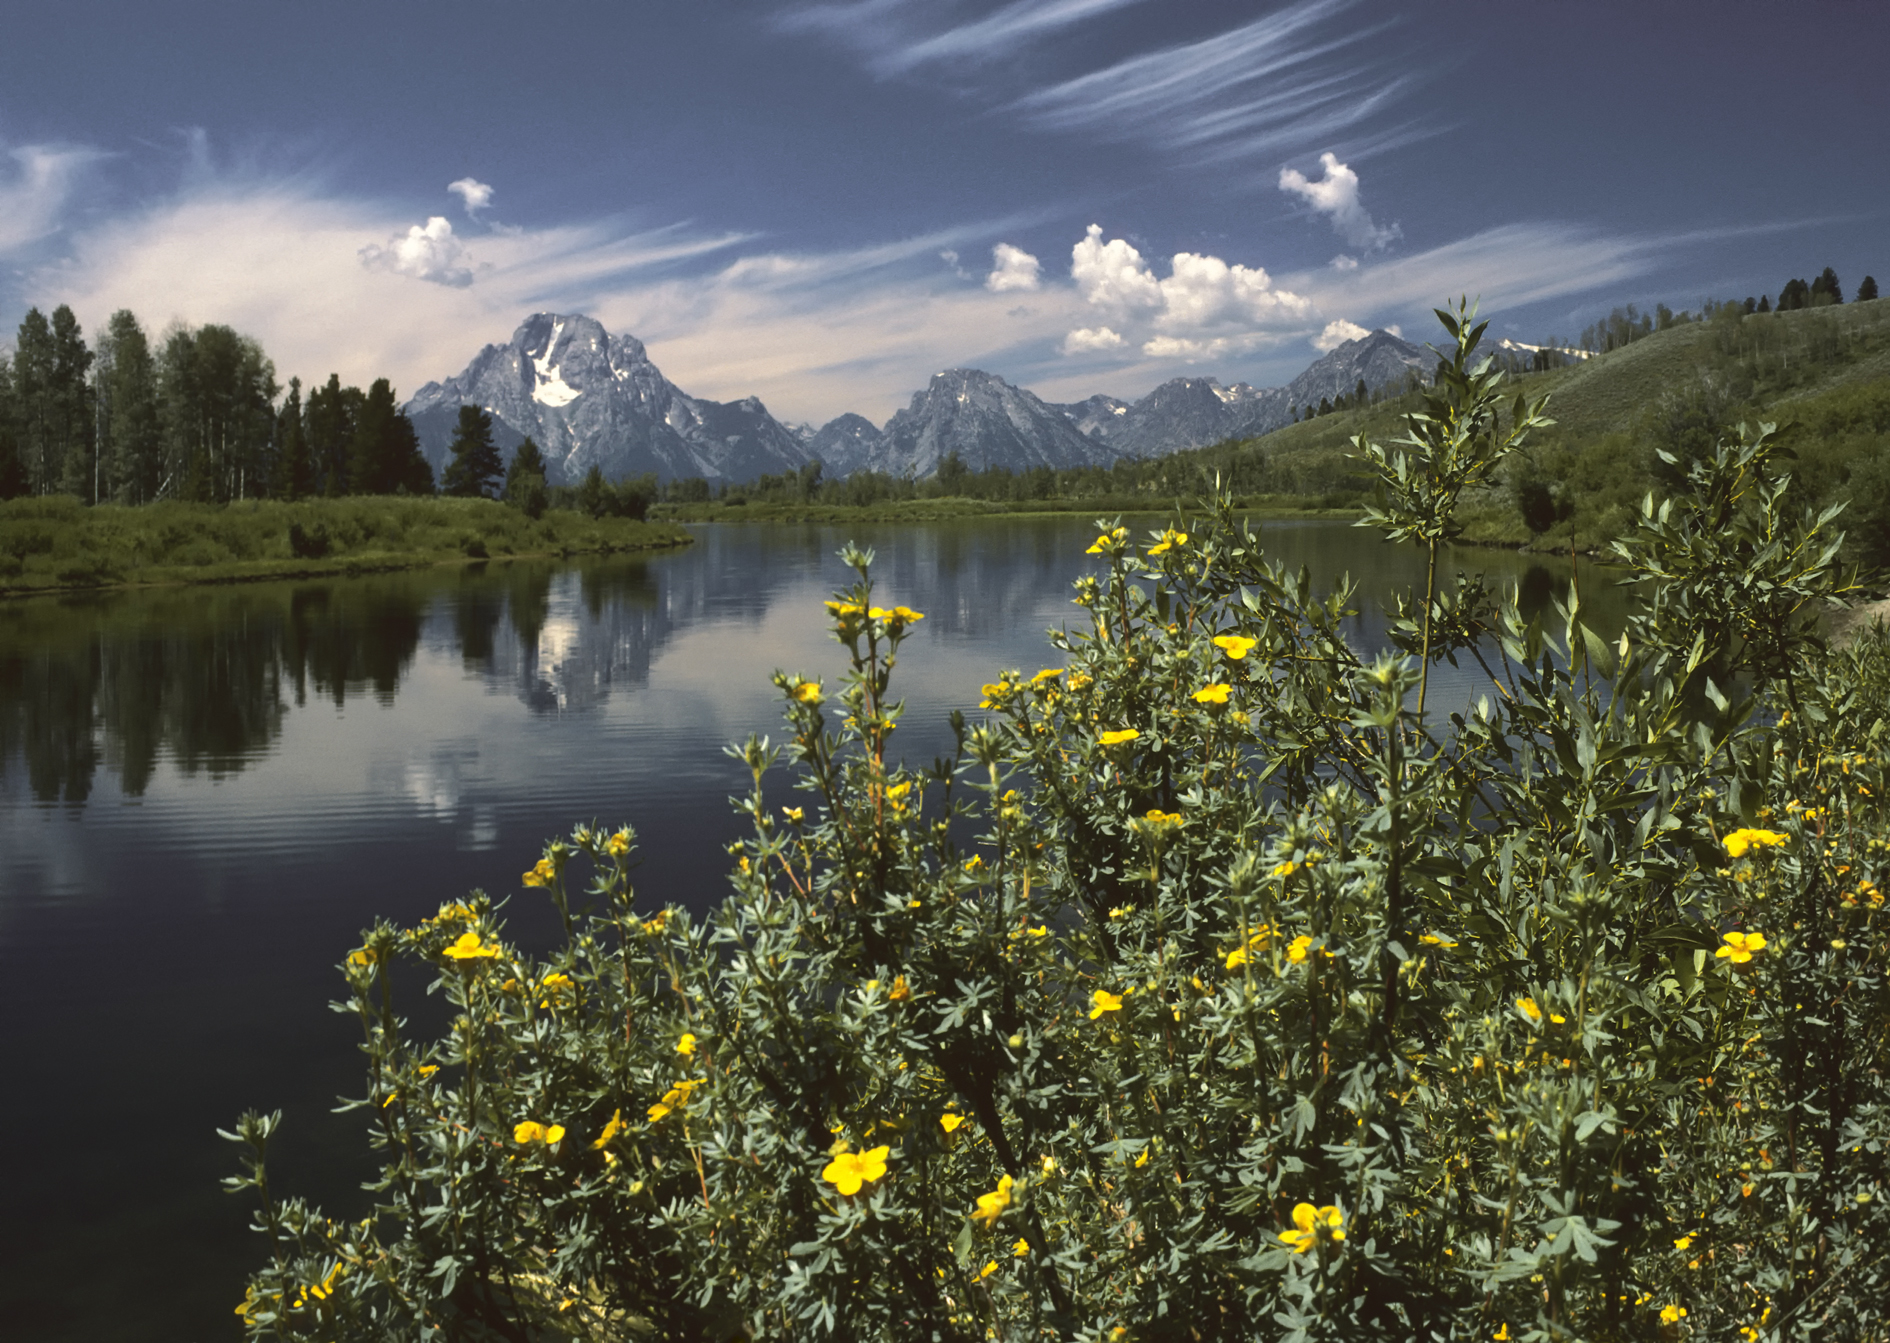 """Oxbow Bend outlook in the Grand Teton National Park"" by I, Michael Gäbler. Licensed under CC BY 3.0 via  Wikimedia Commons"